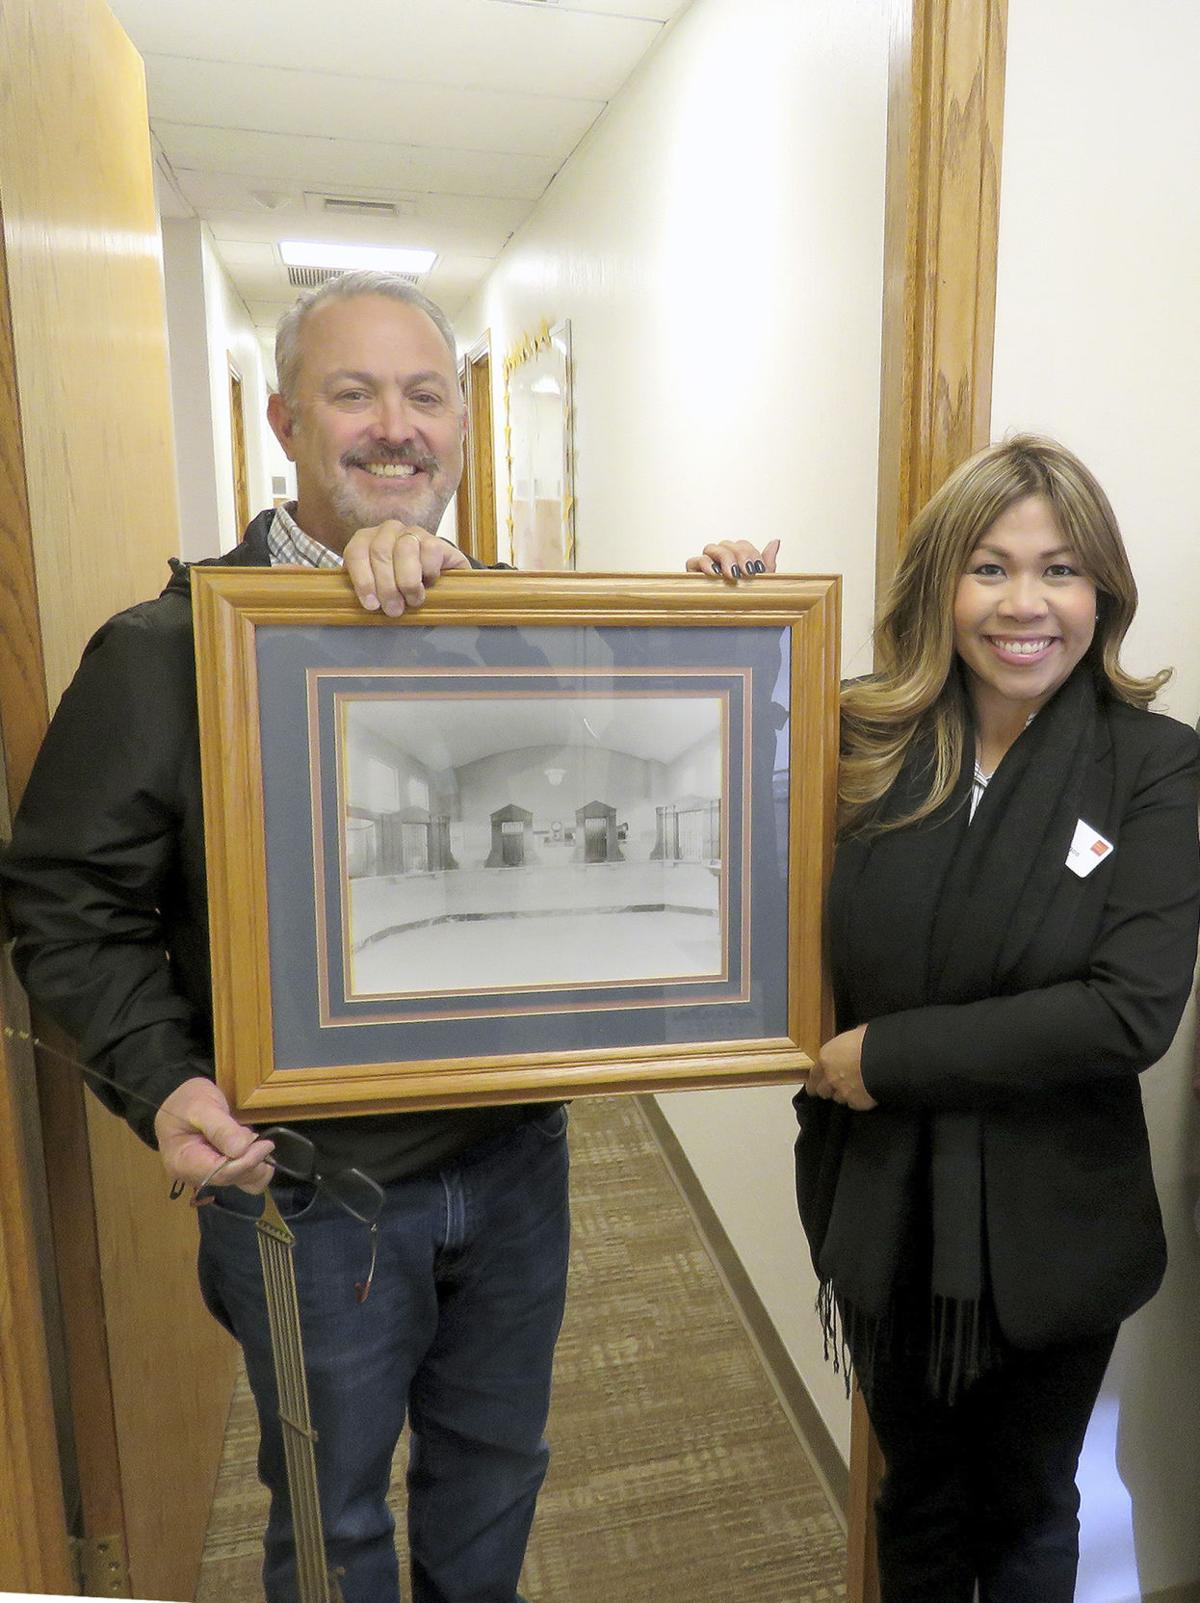 San Gorgonio Pass Historical Society President Sean Balingit, with Wells Fargo branch manager Catherine Ramos, hold a framed picture of the interior of the Bank of Beaumont